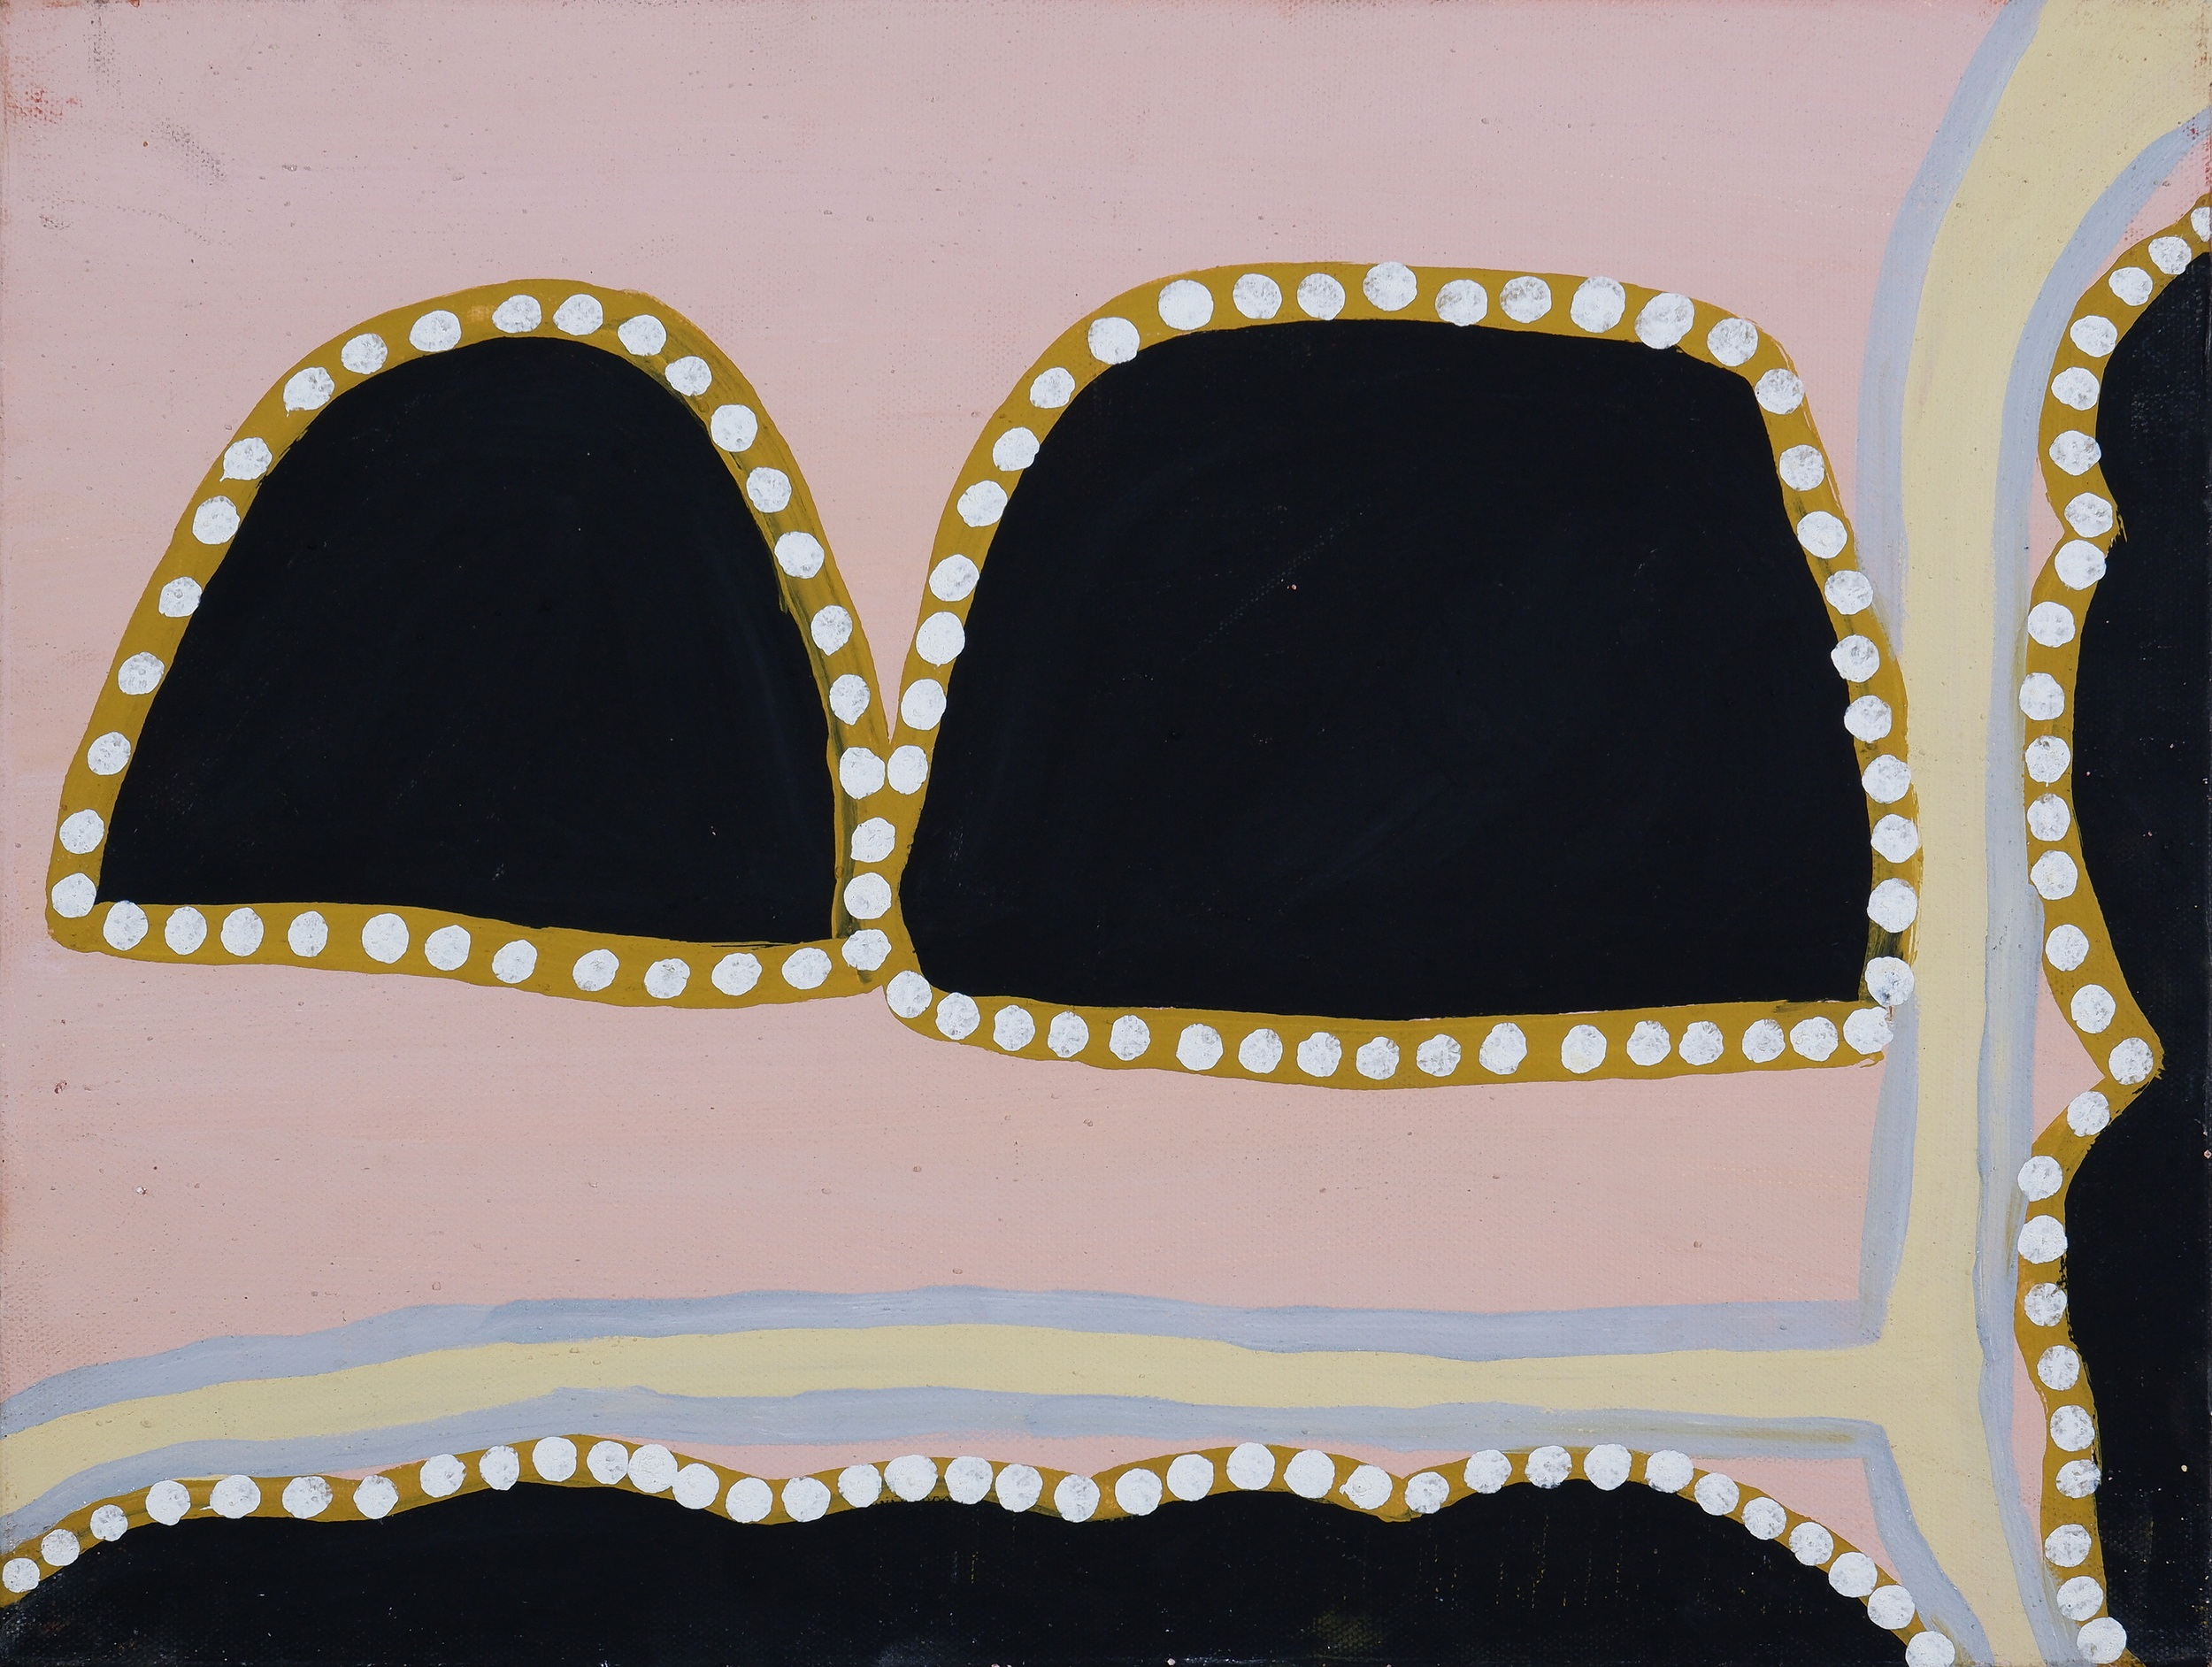 'Yvonne Newry (born 1973, Miriwoong language group), Merilnyarriyam, Natural Ochres and Pigments on Canvas, 30 x 40 cm'